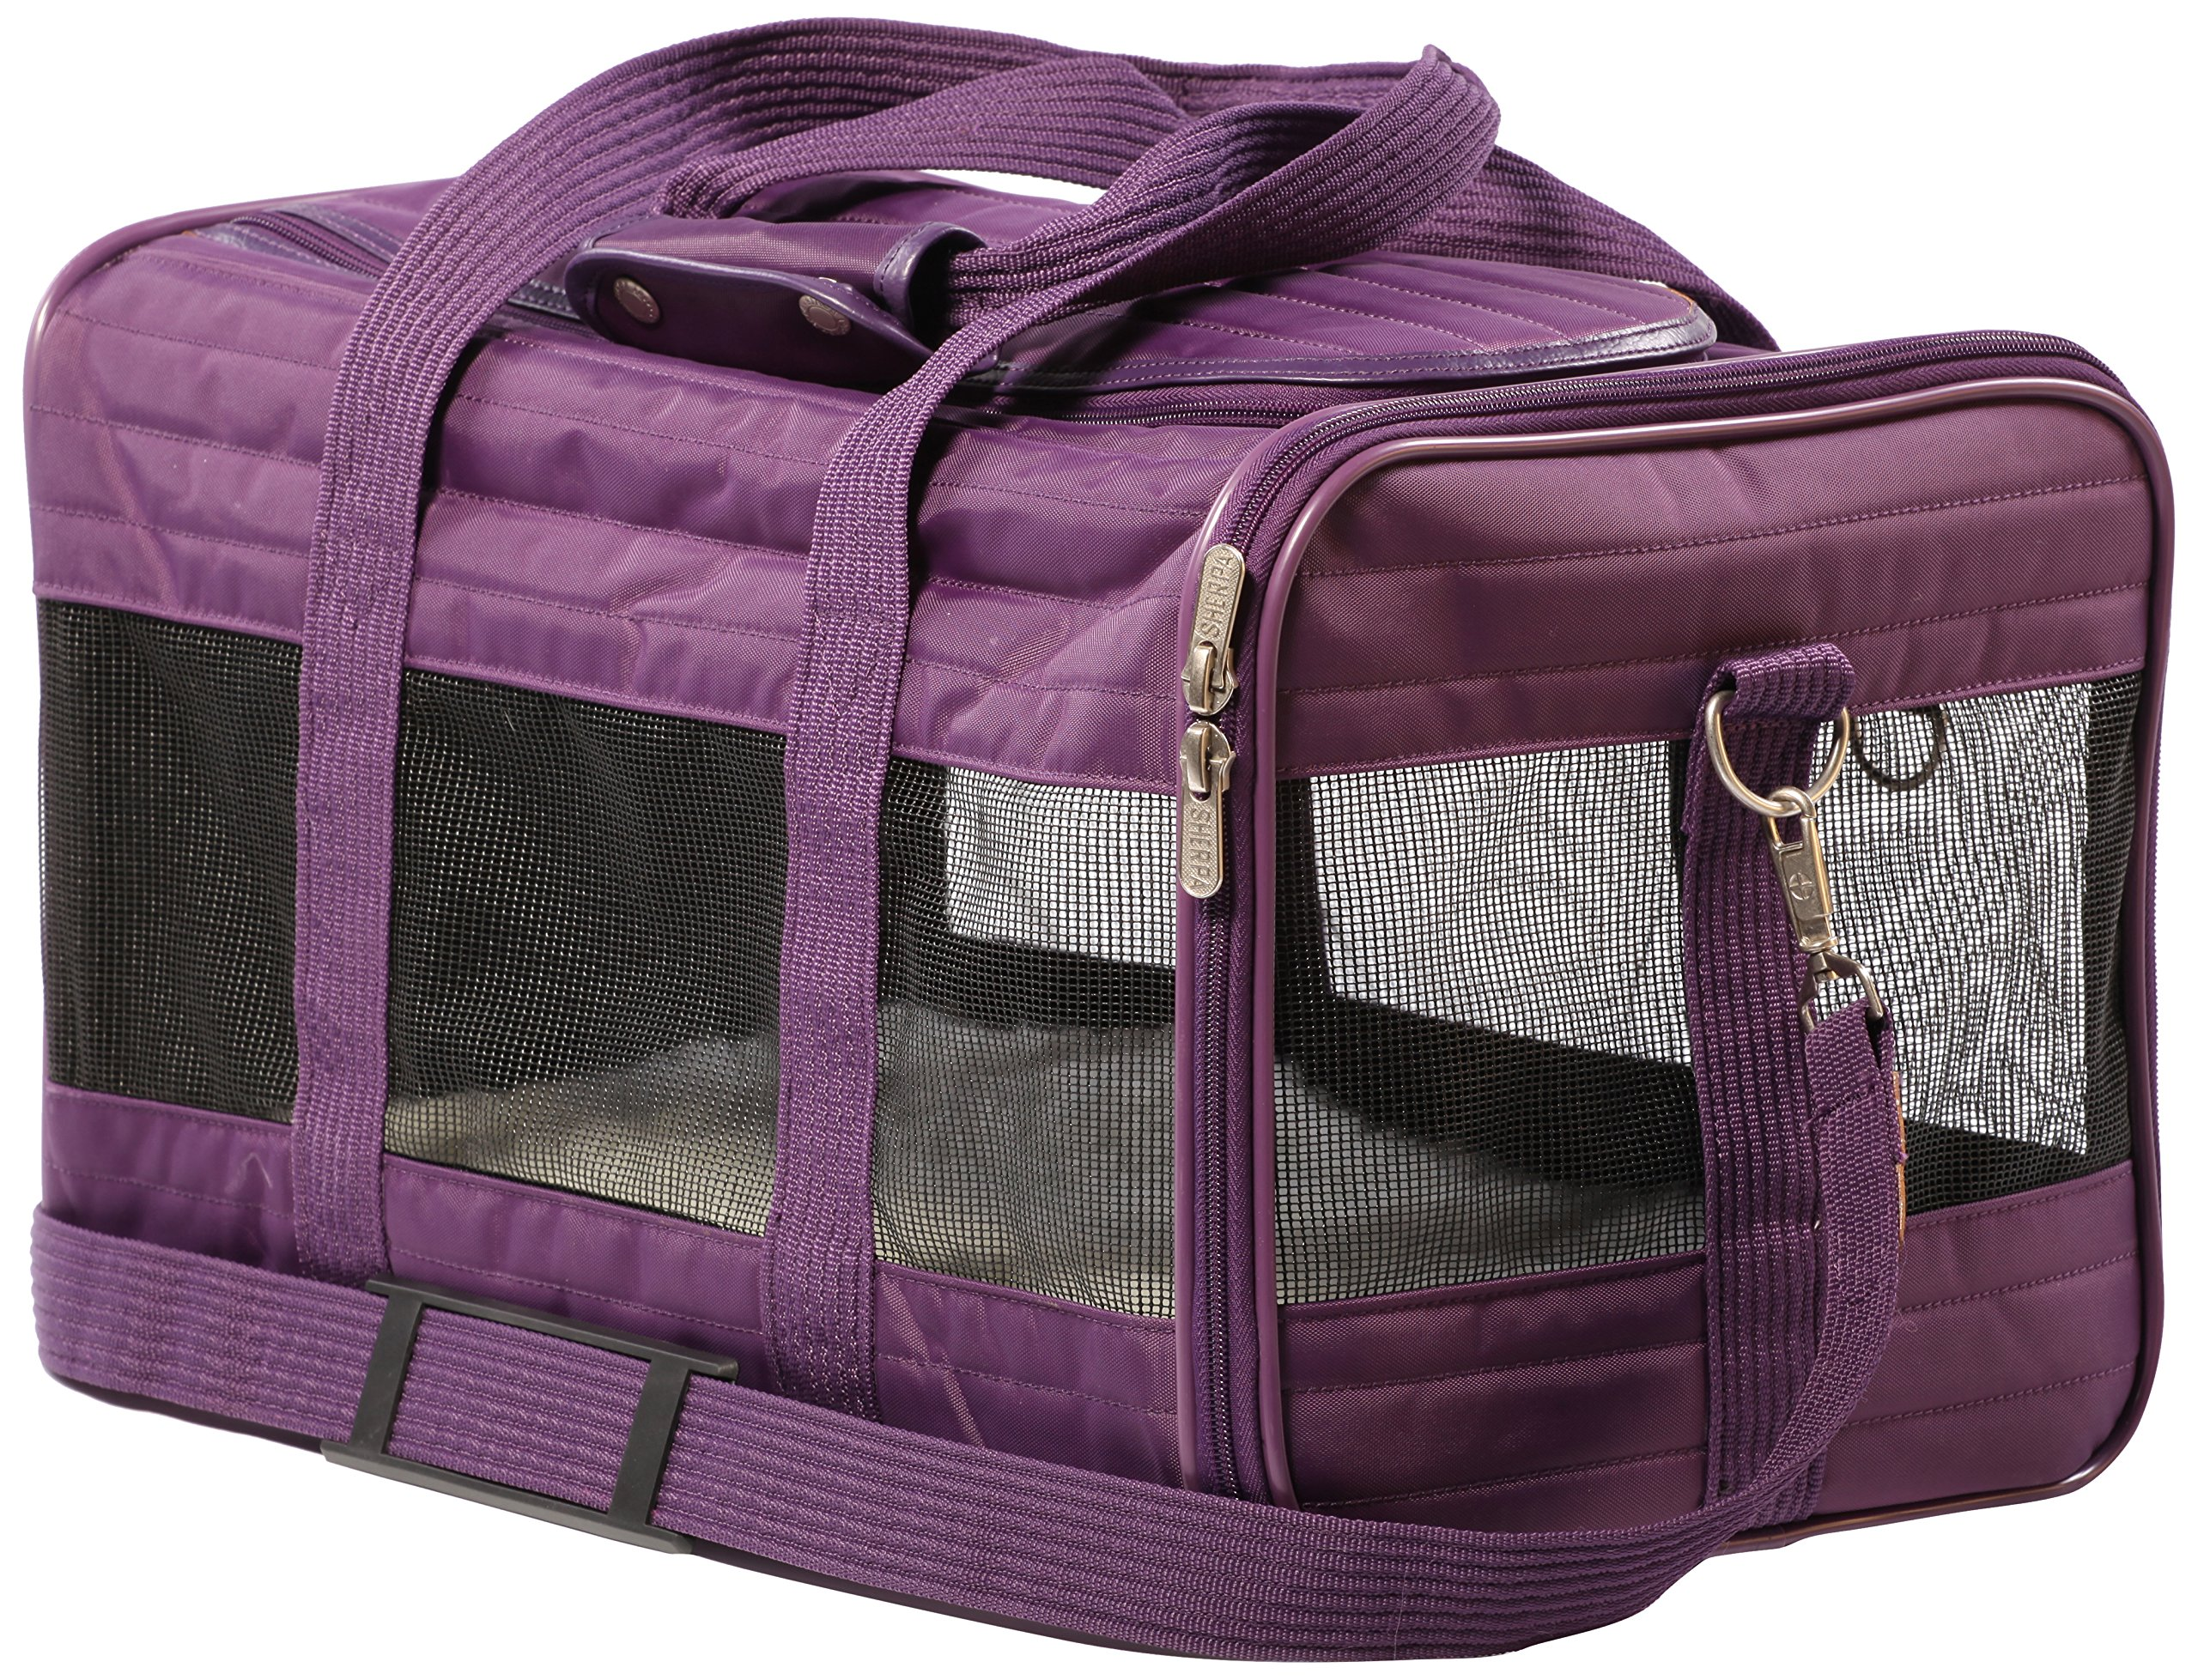 Sherpa Travel Original Deluxe Airline Approved Pet Carrier, Small, Plum by Sherpa